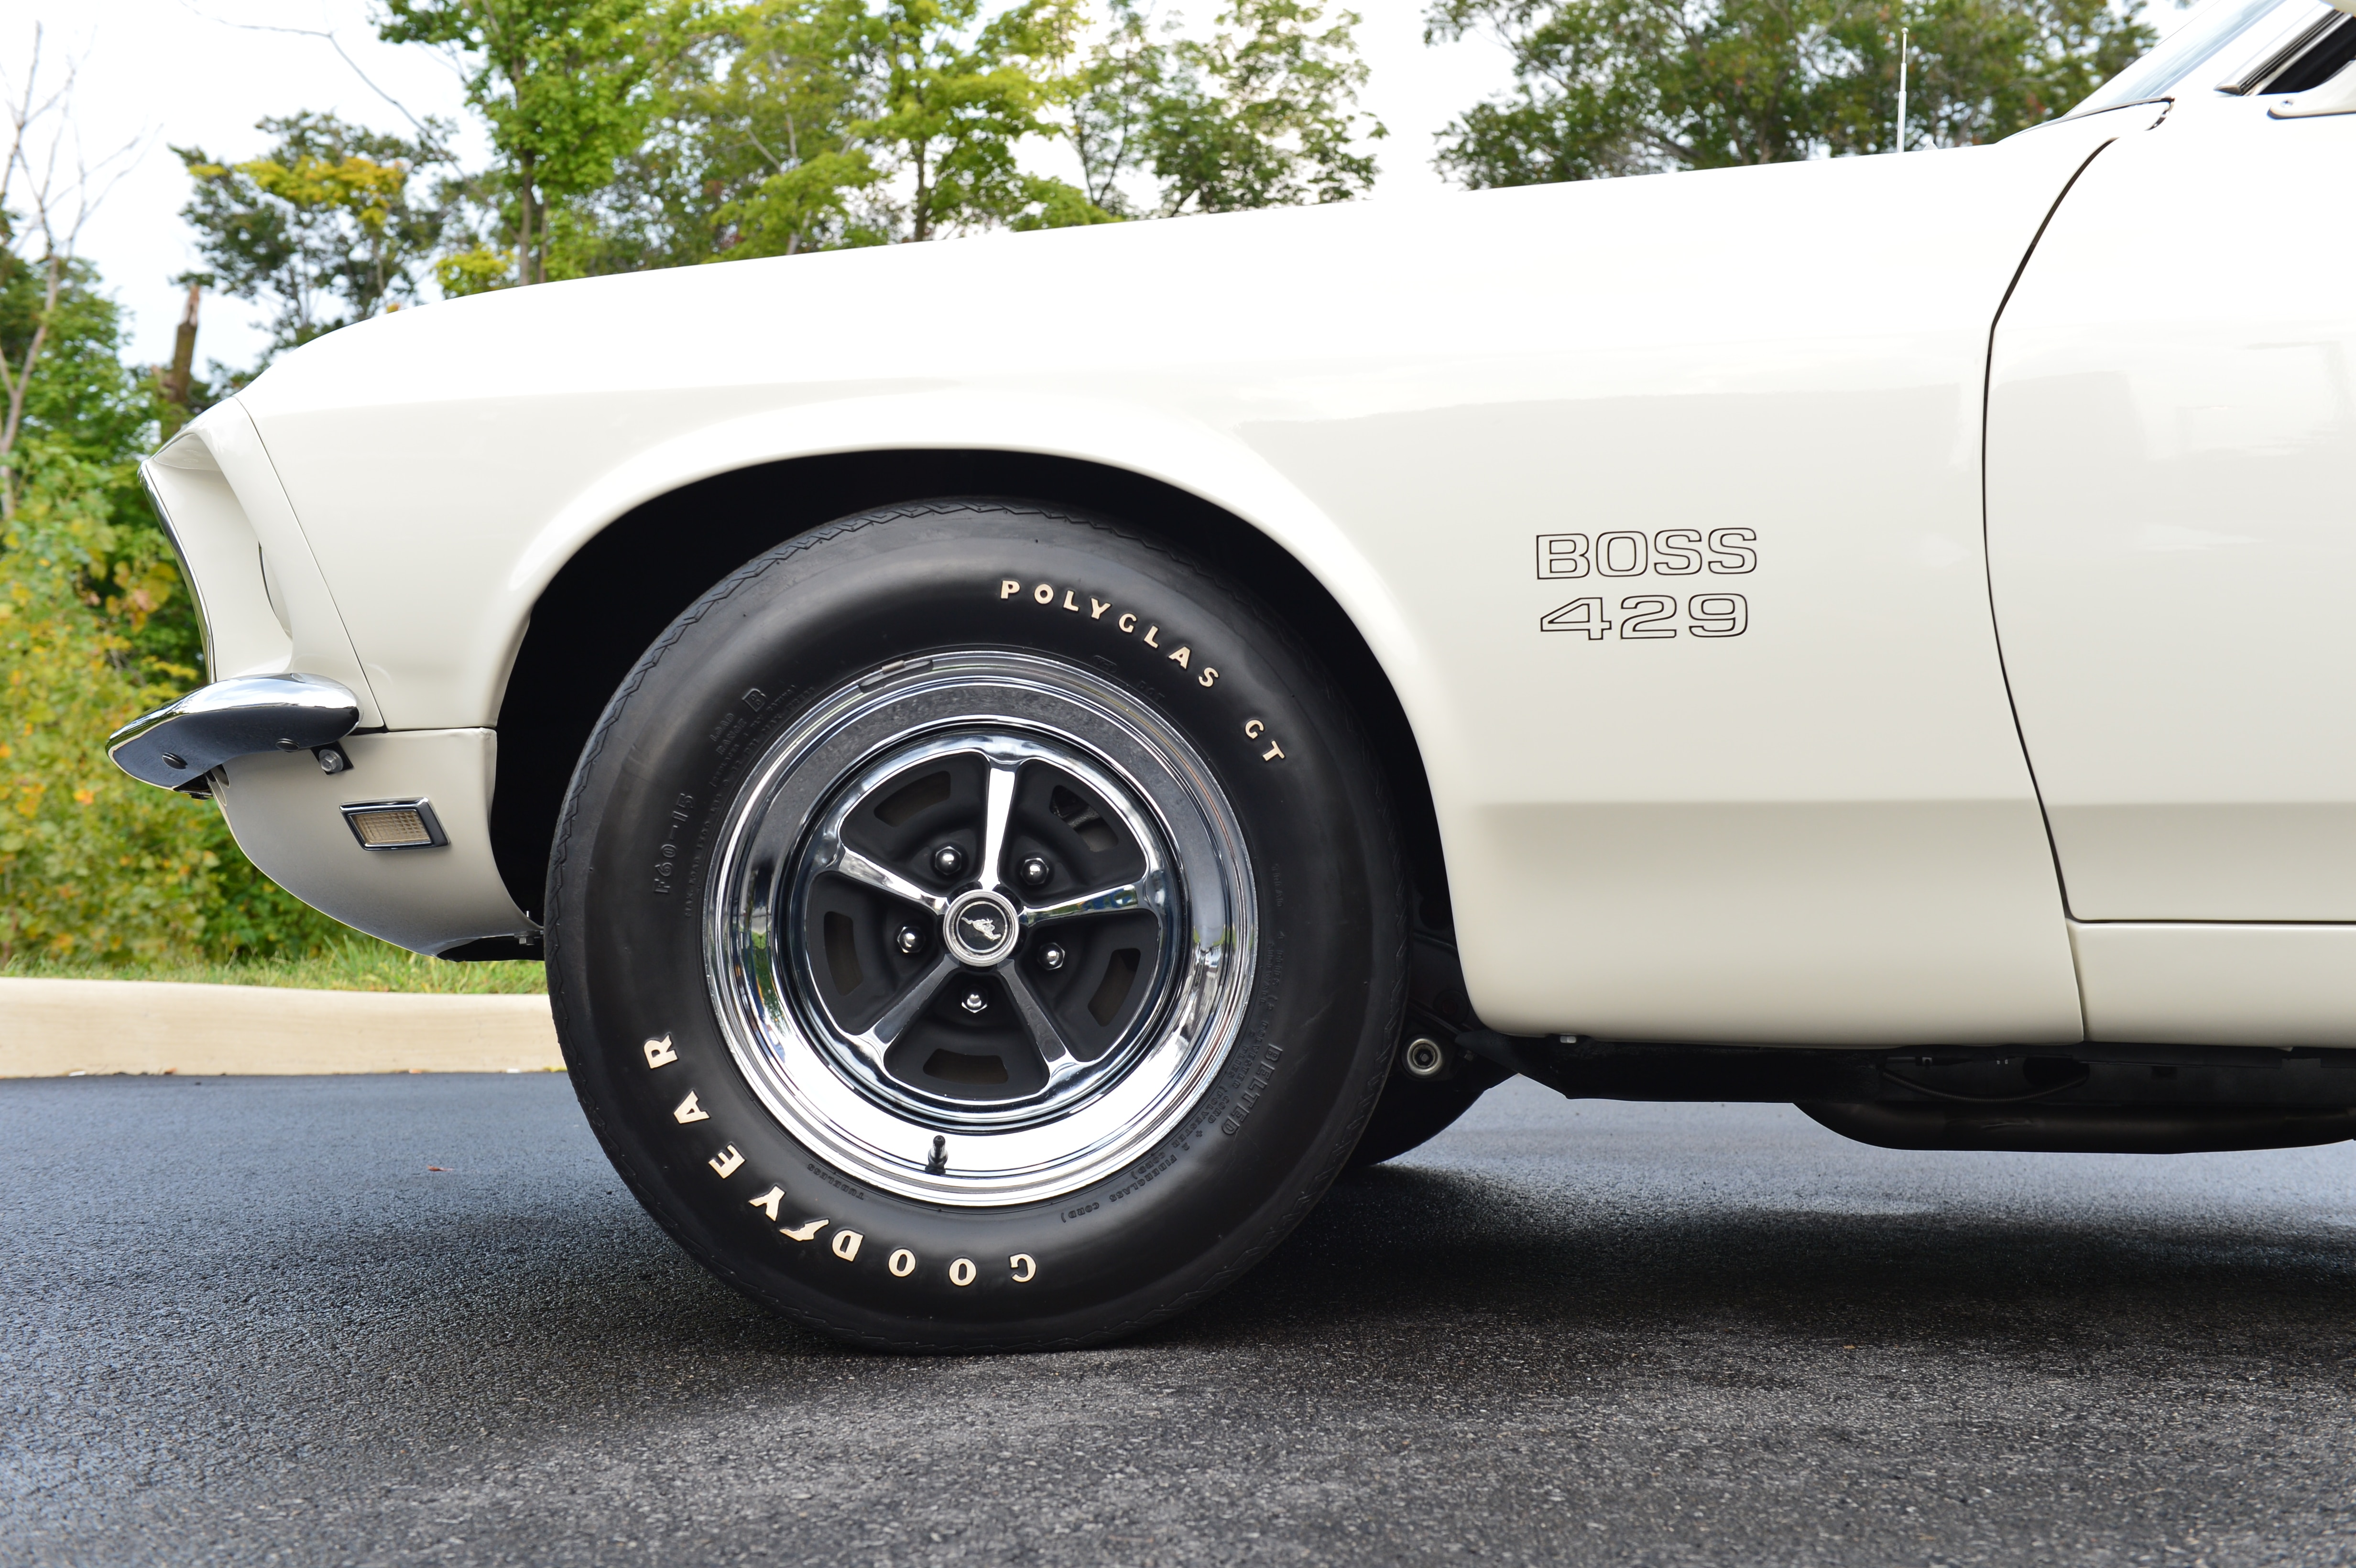 1969 mustang wheel ford boss nicest planet most tires